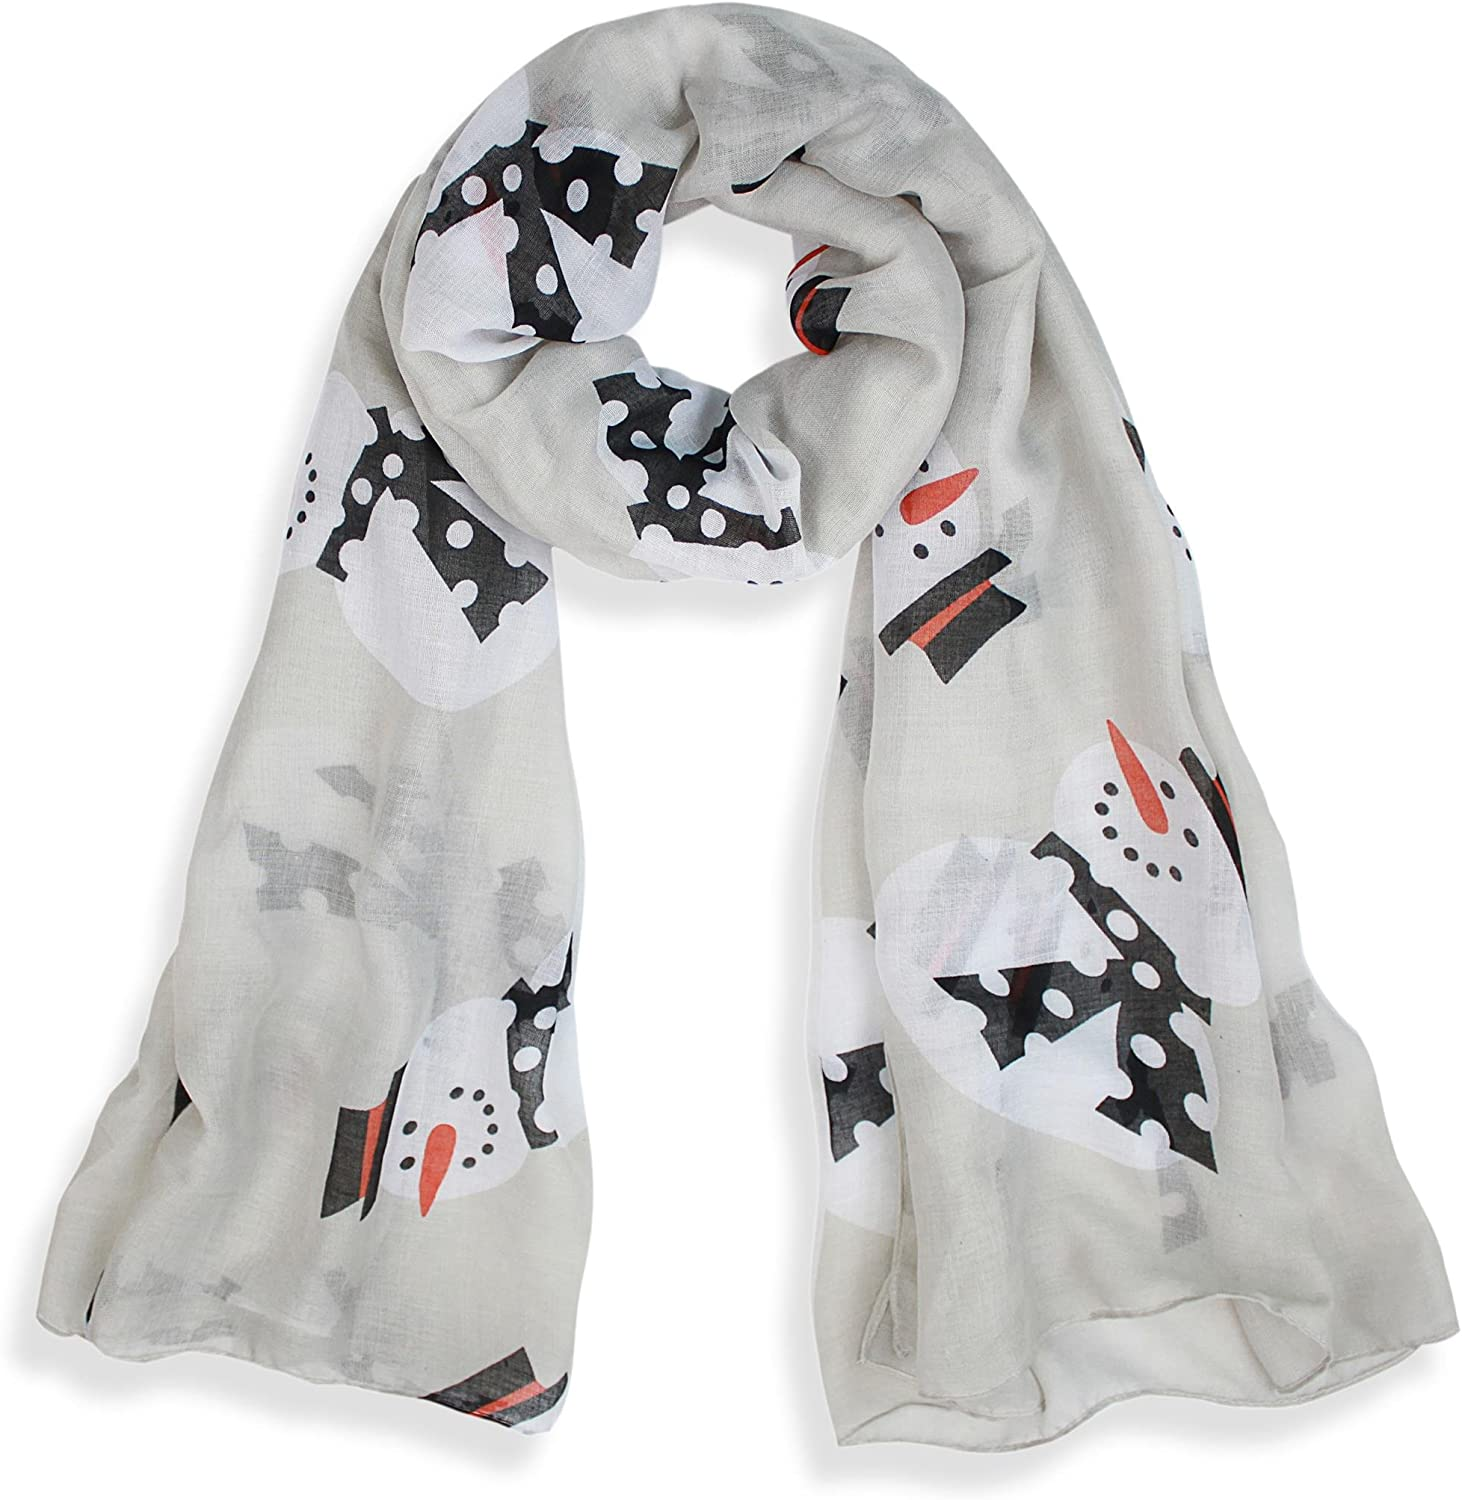 V28 Candy Wholesale Cane Print Women's Scarf Christmas Gift Lightweight Ranking integrated 1st place